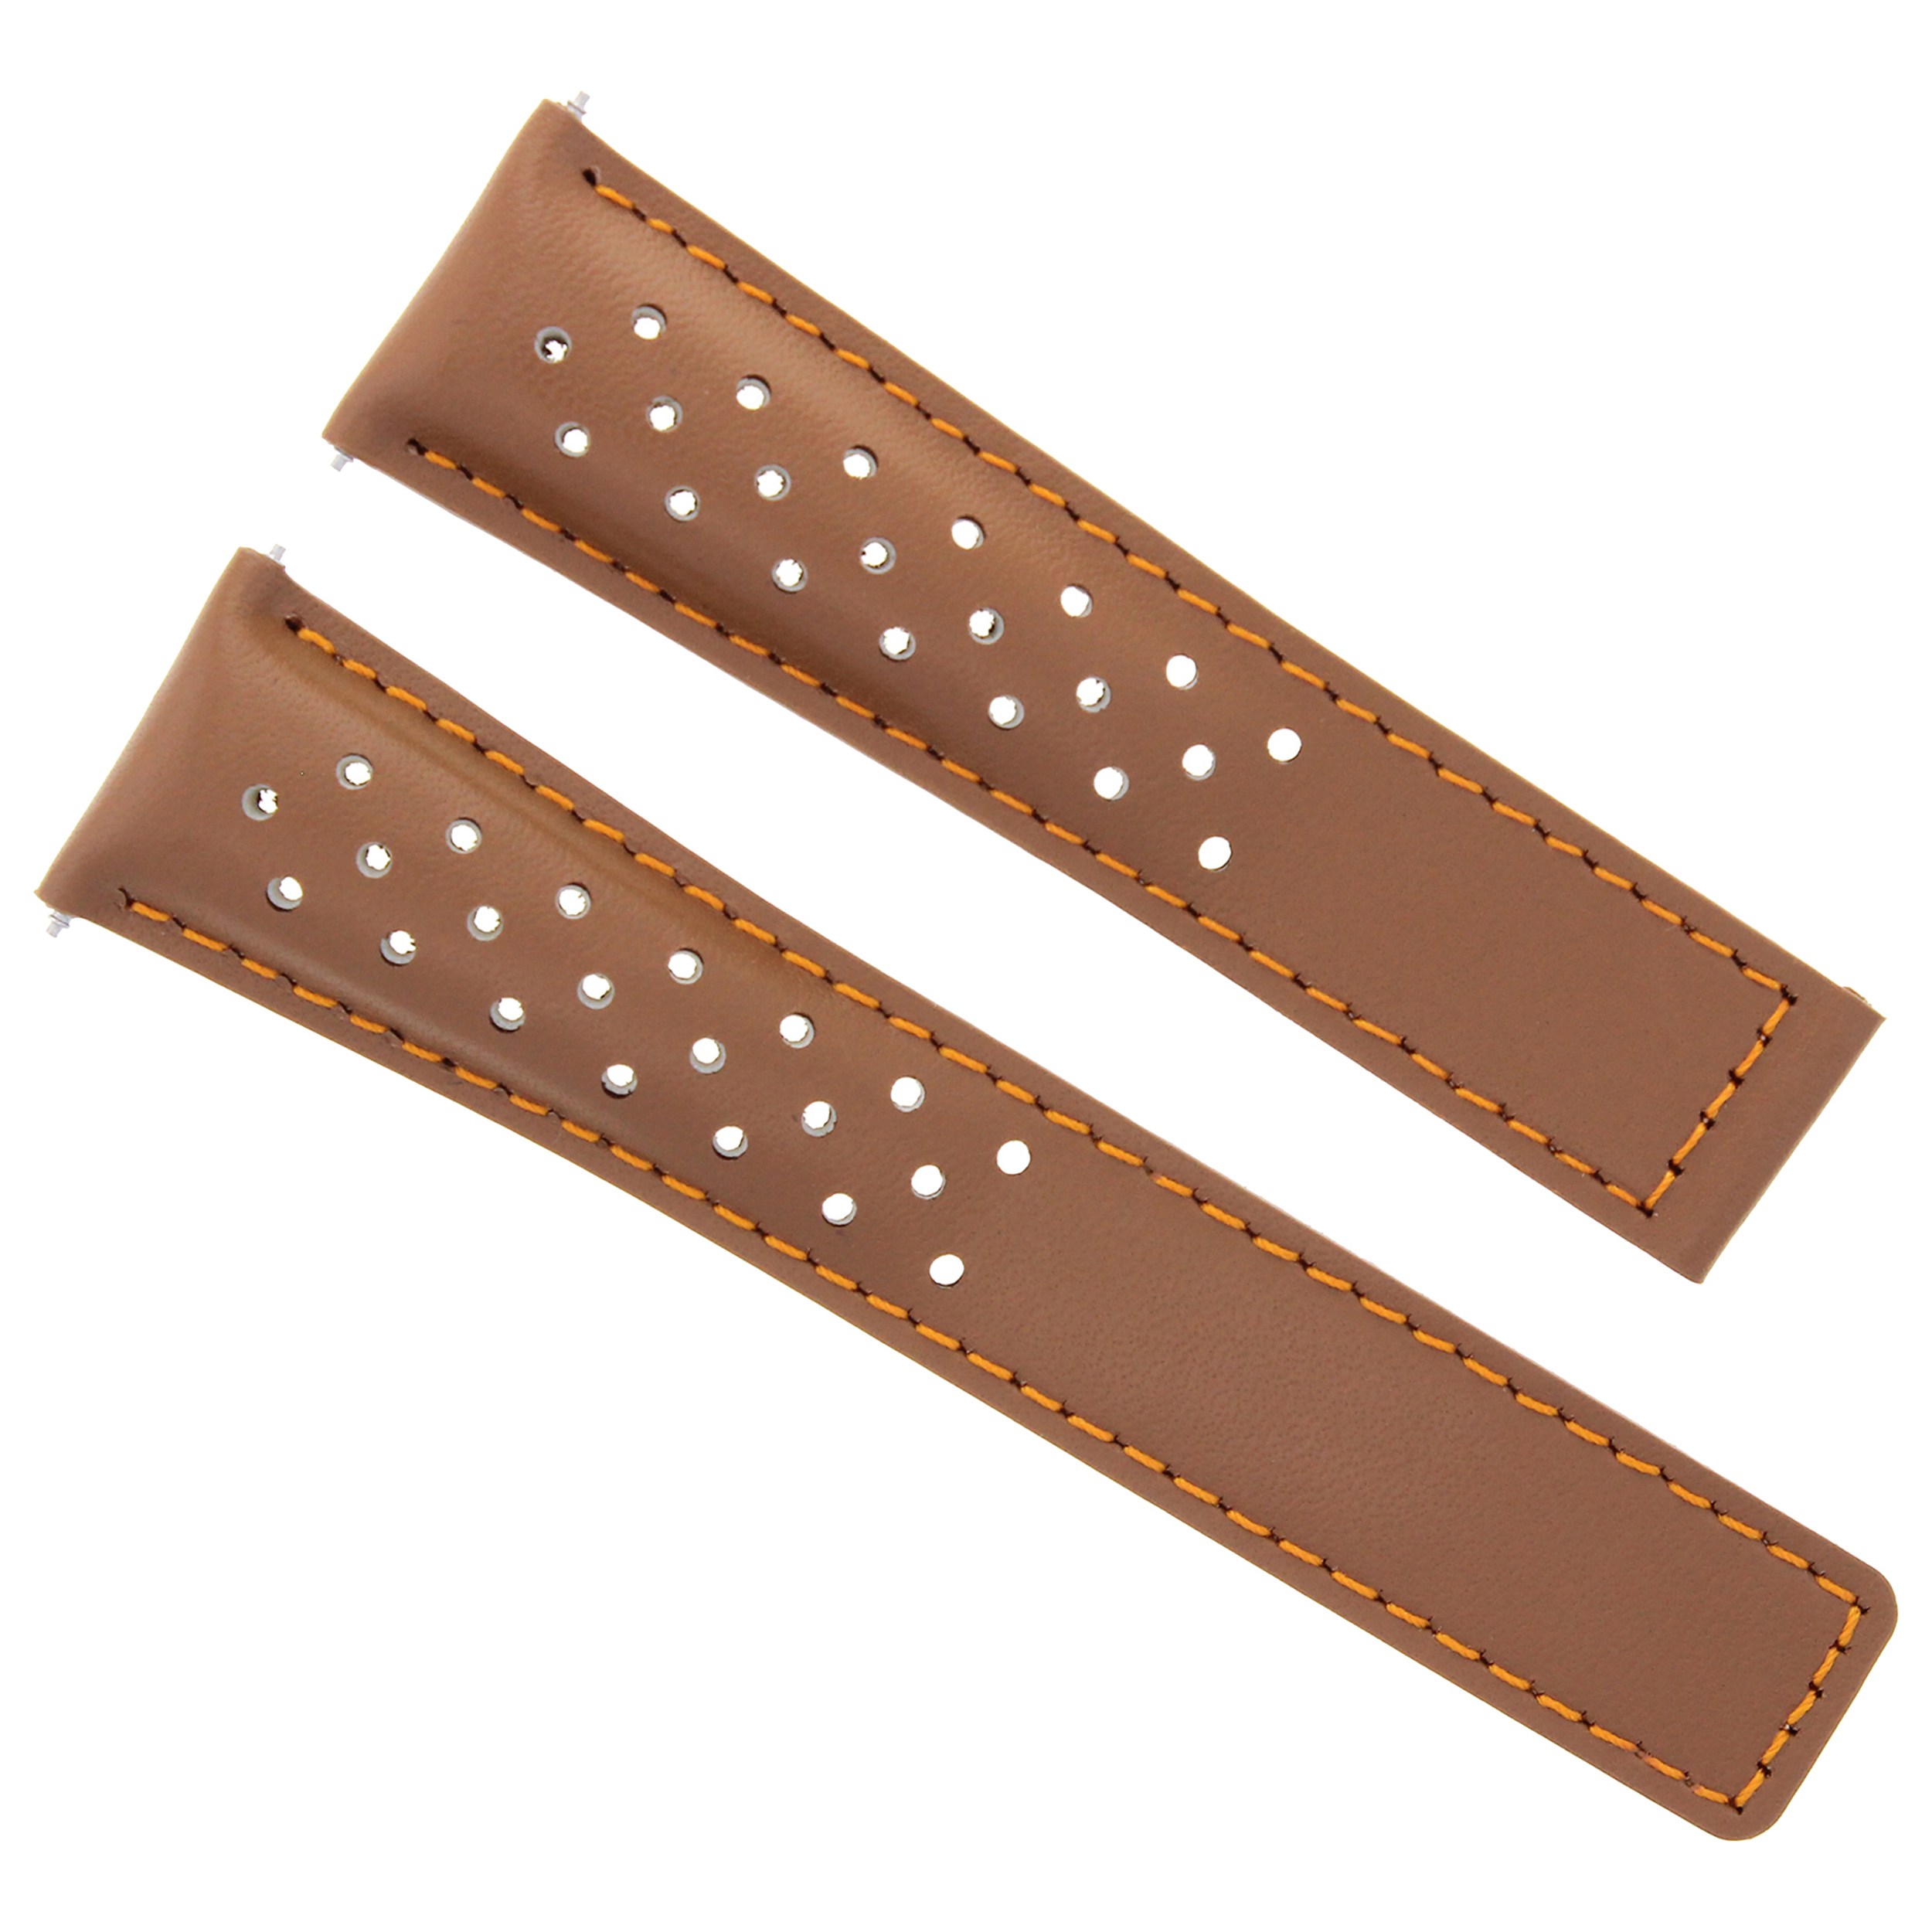 LEATHER WATCH STRAP 22MM FOR TAG CARRERA 16 MONACO SPORTS TAN OS FIT FC-5037-39R